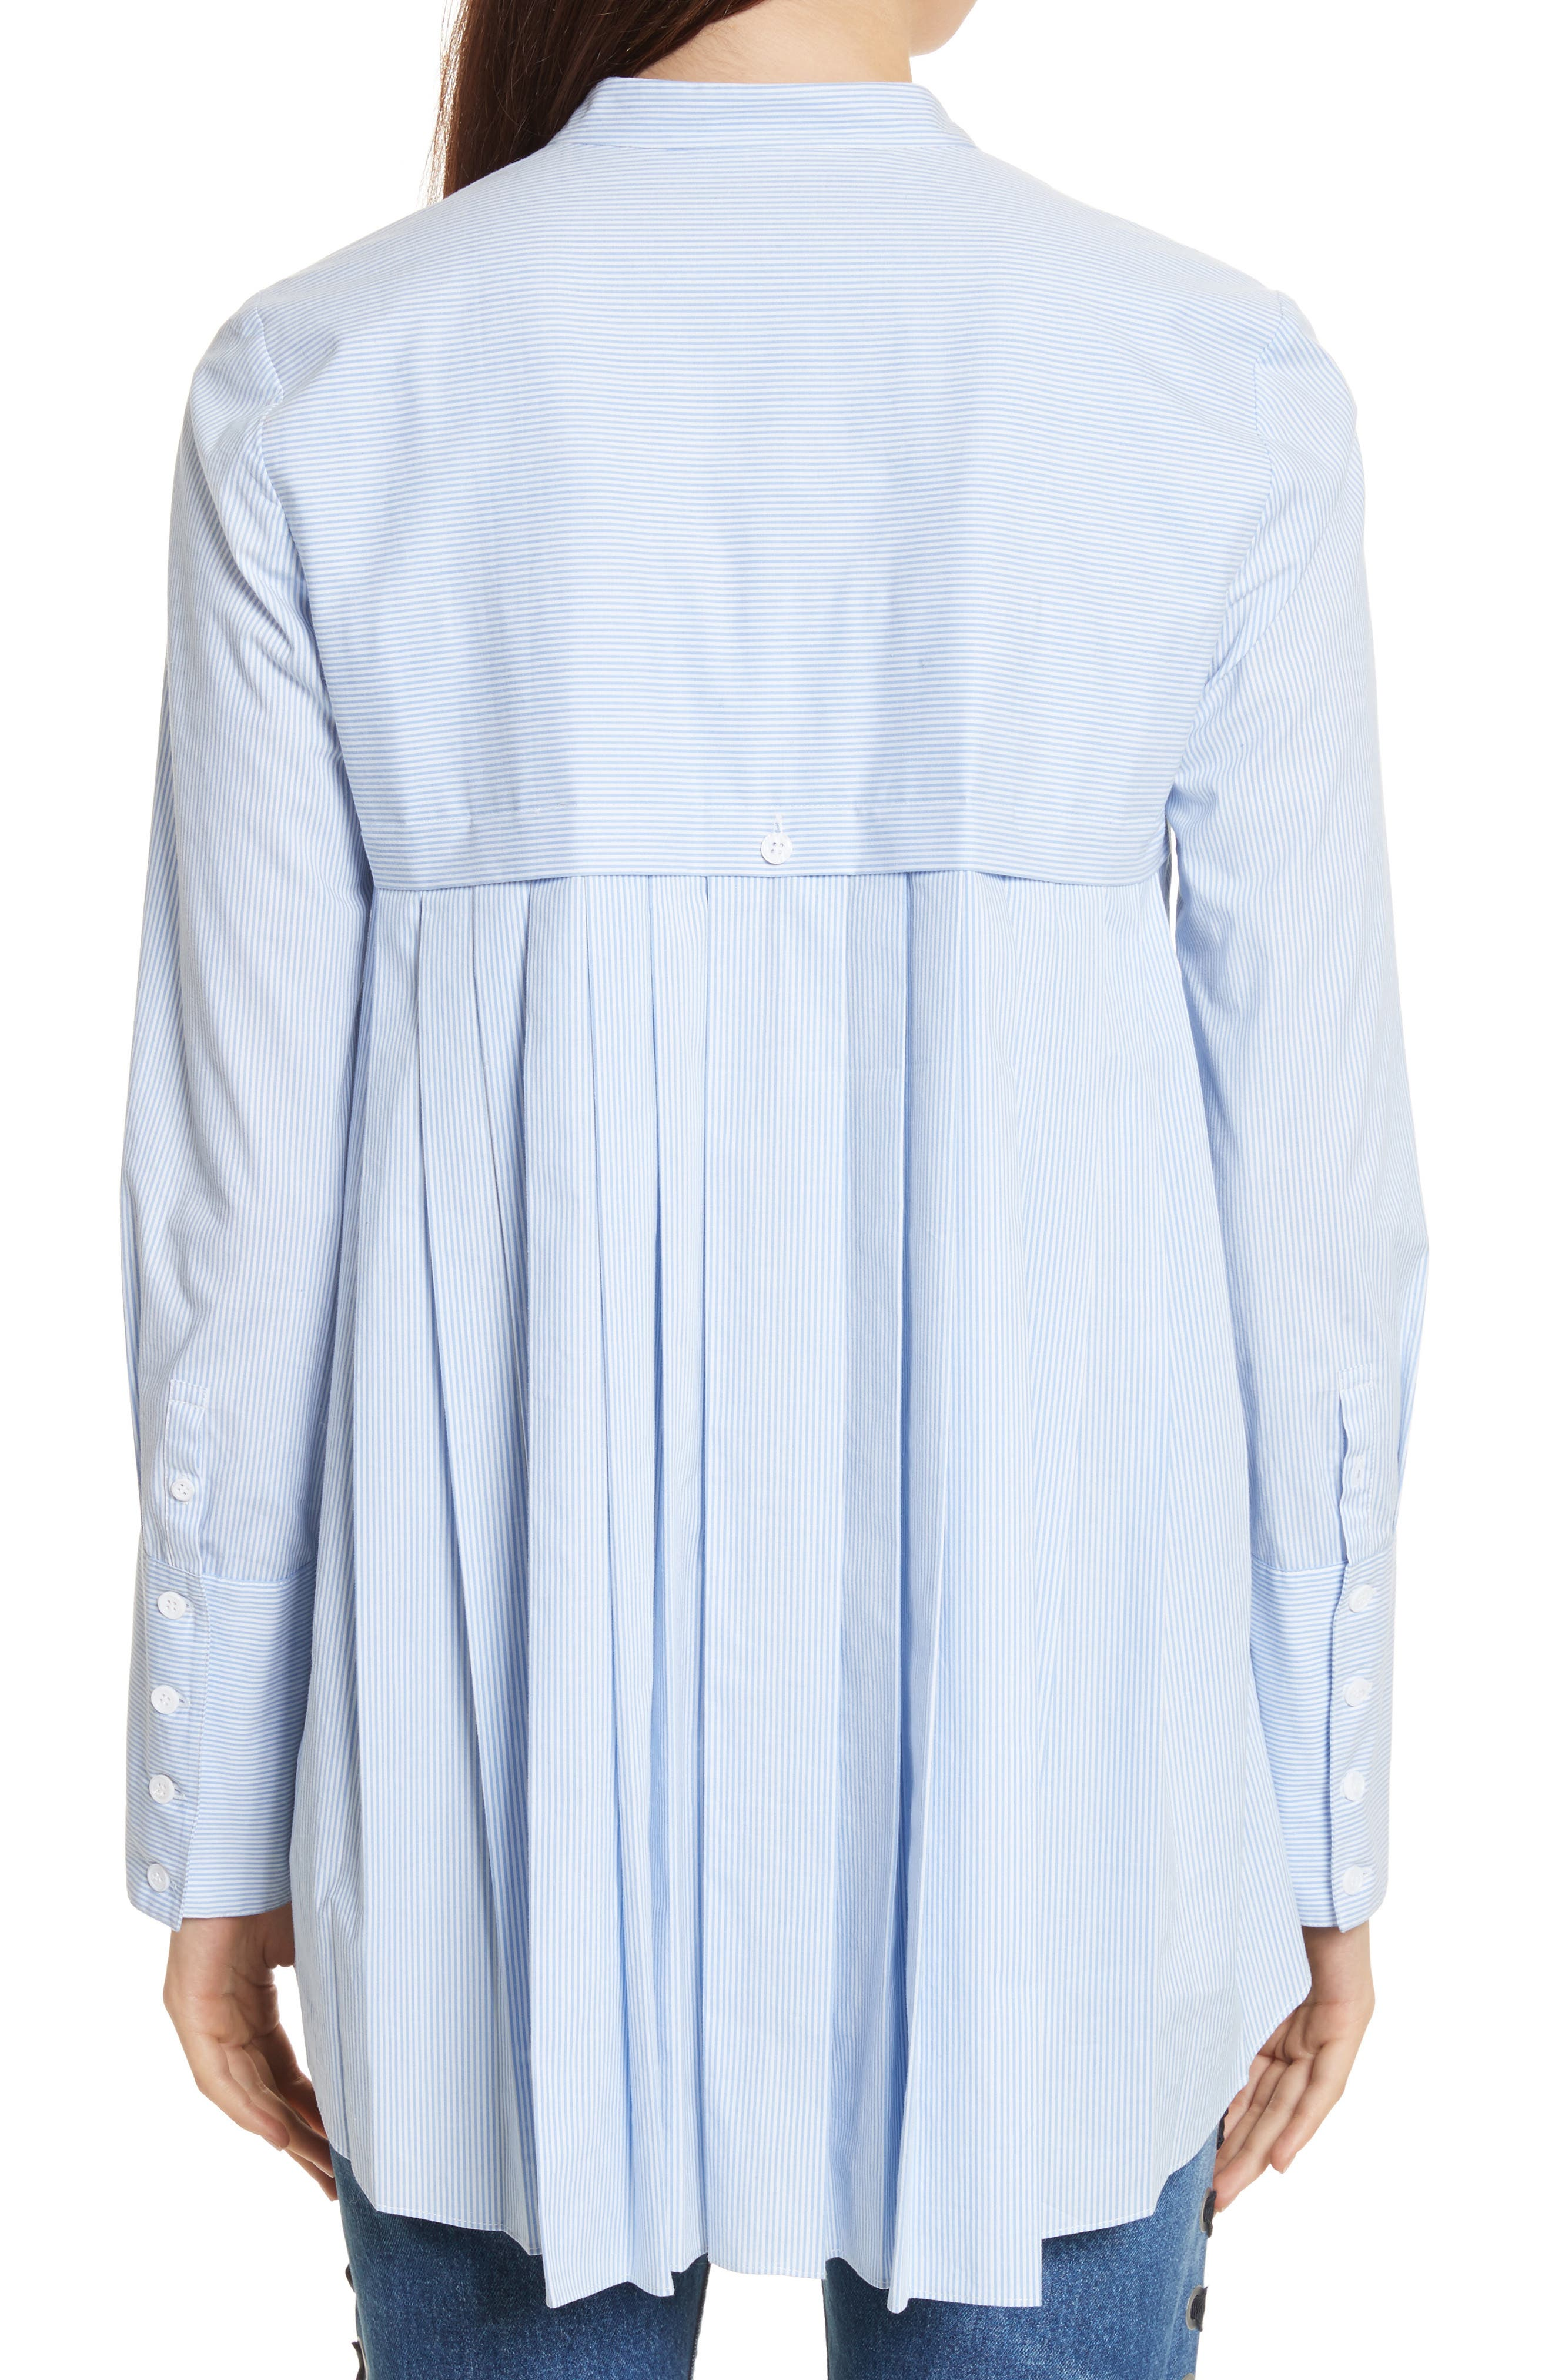 Greer Pleated Stretch Cotton Shirt,                             Alternate thumbnail 2, color,                             452